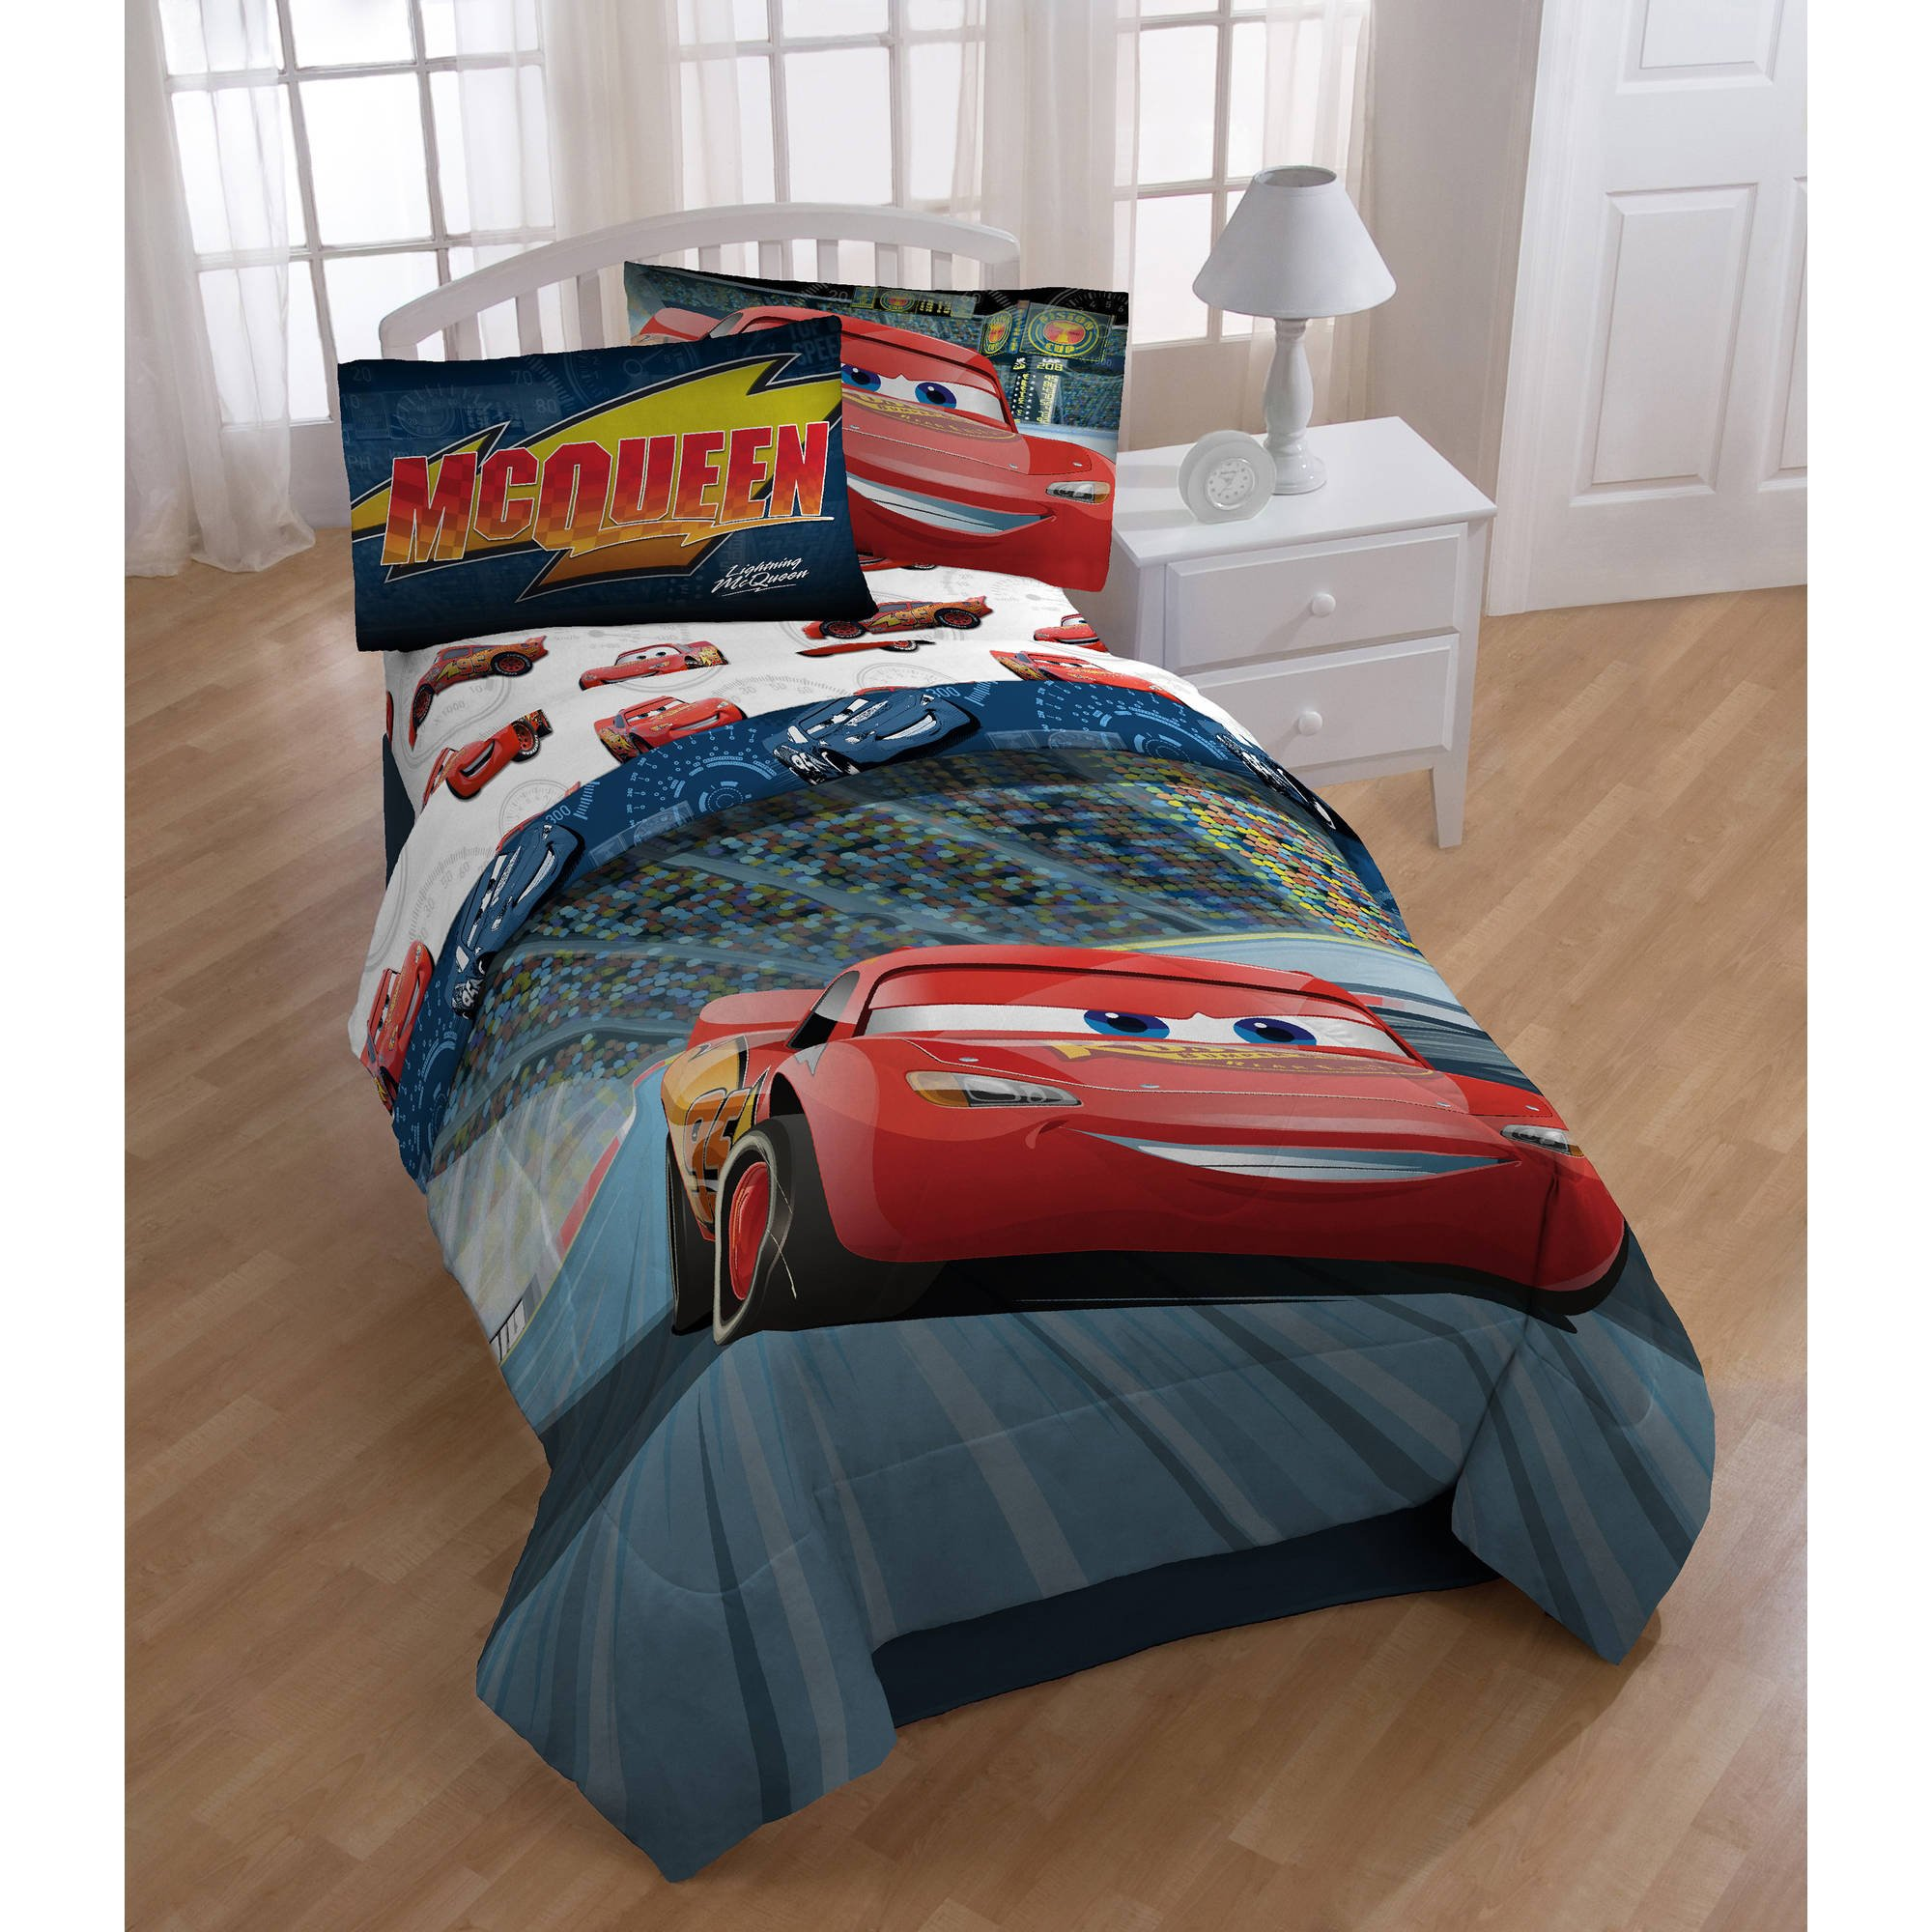 A&L 1 Piece Boys Red Cars 3 Comforter Twin Full, Blue Kids Bedding Lightning Mcqueen Car Speedometer Jackson Storm Print Novelty Auto Racing Animated Comedy Movie Character Pattern